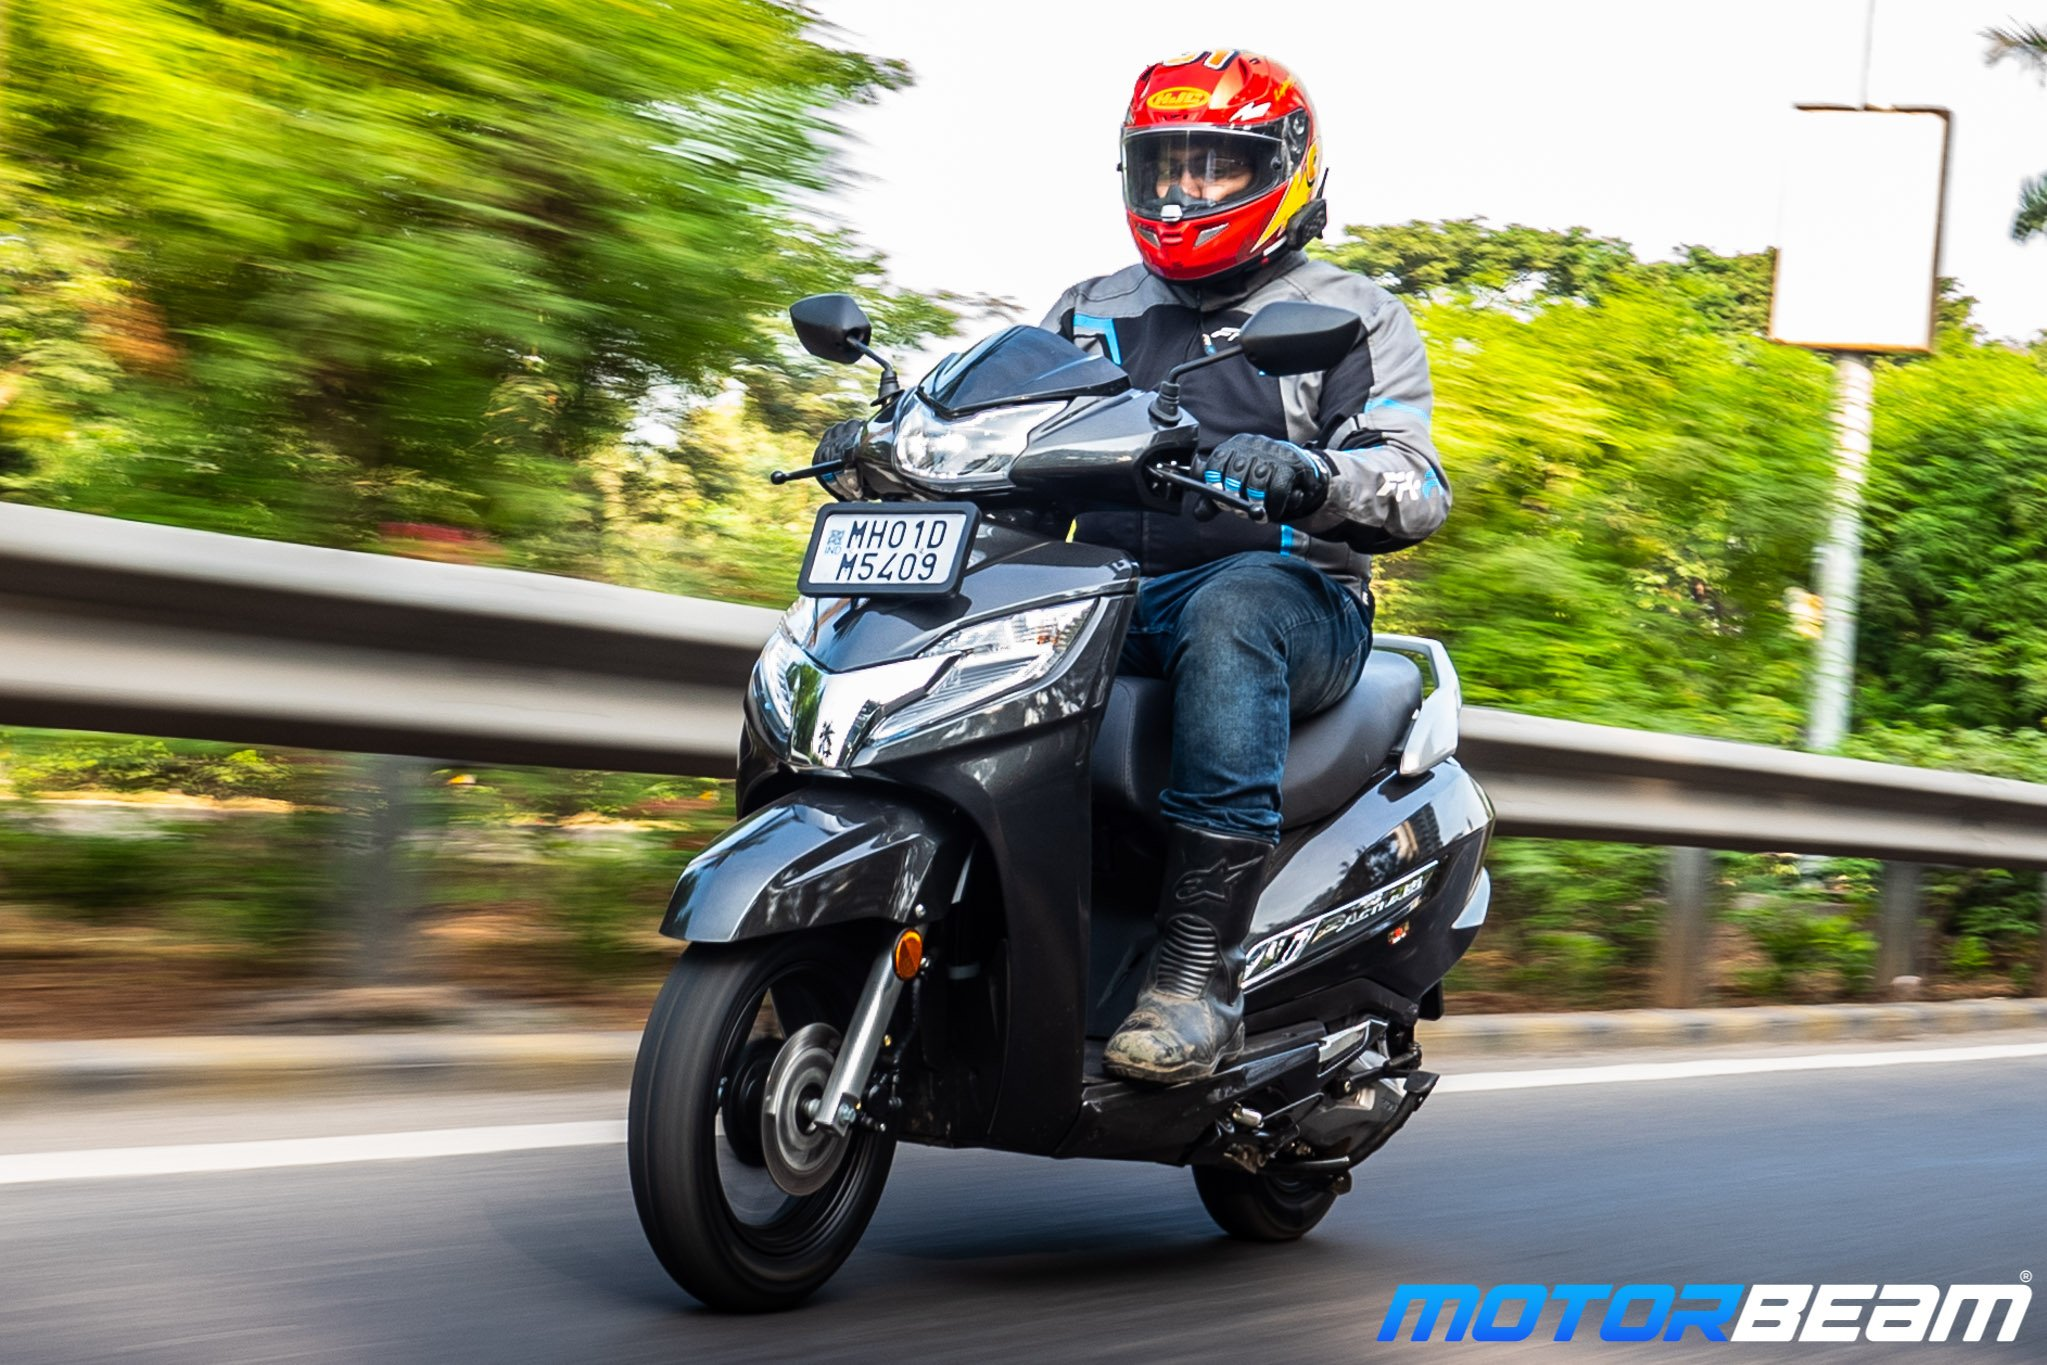 Honda Activa 125 BS6 test ride review